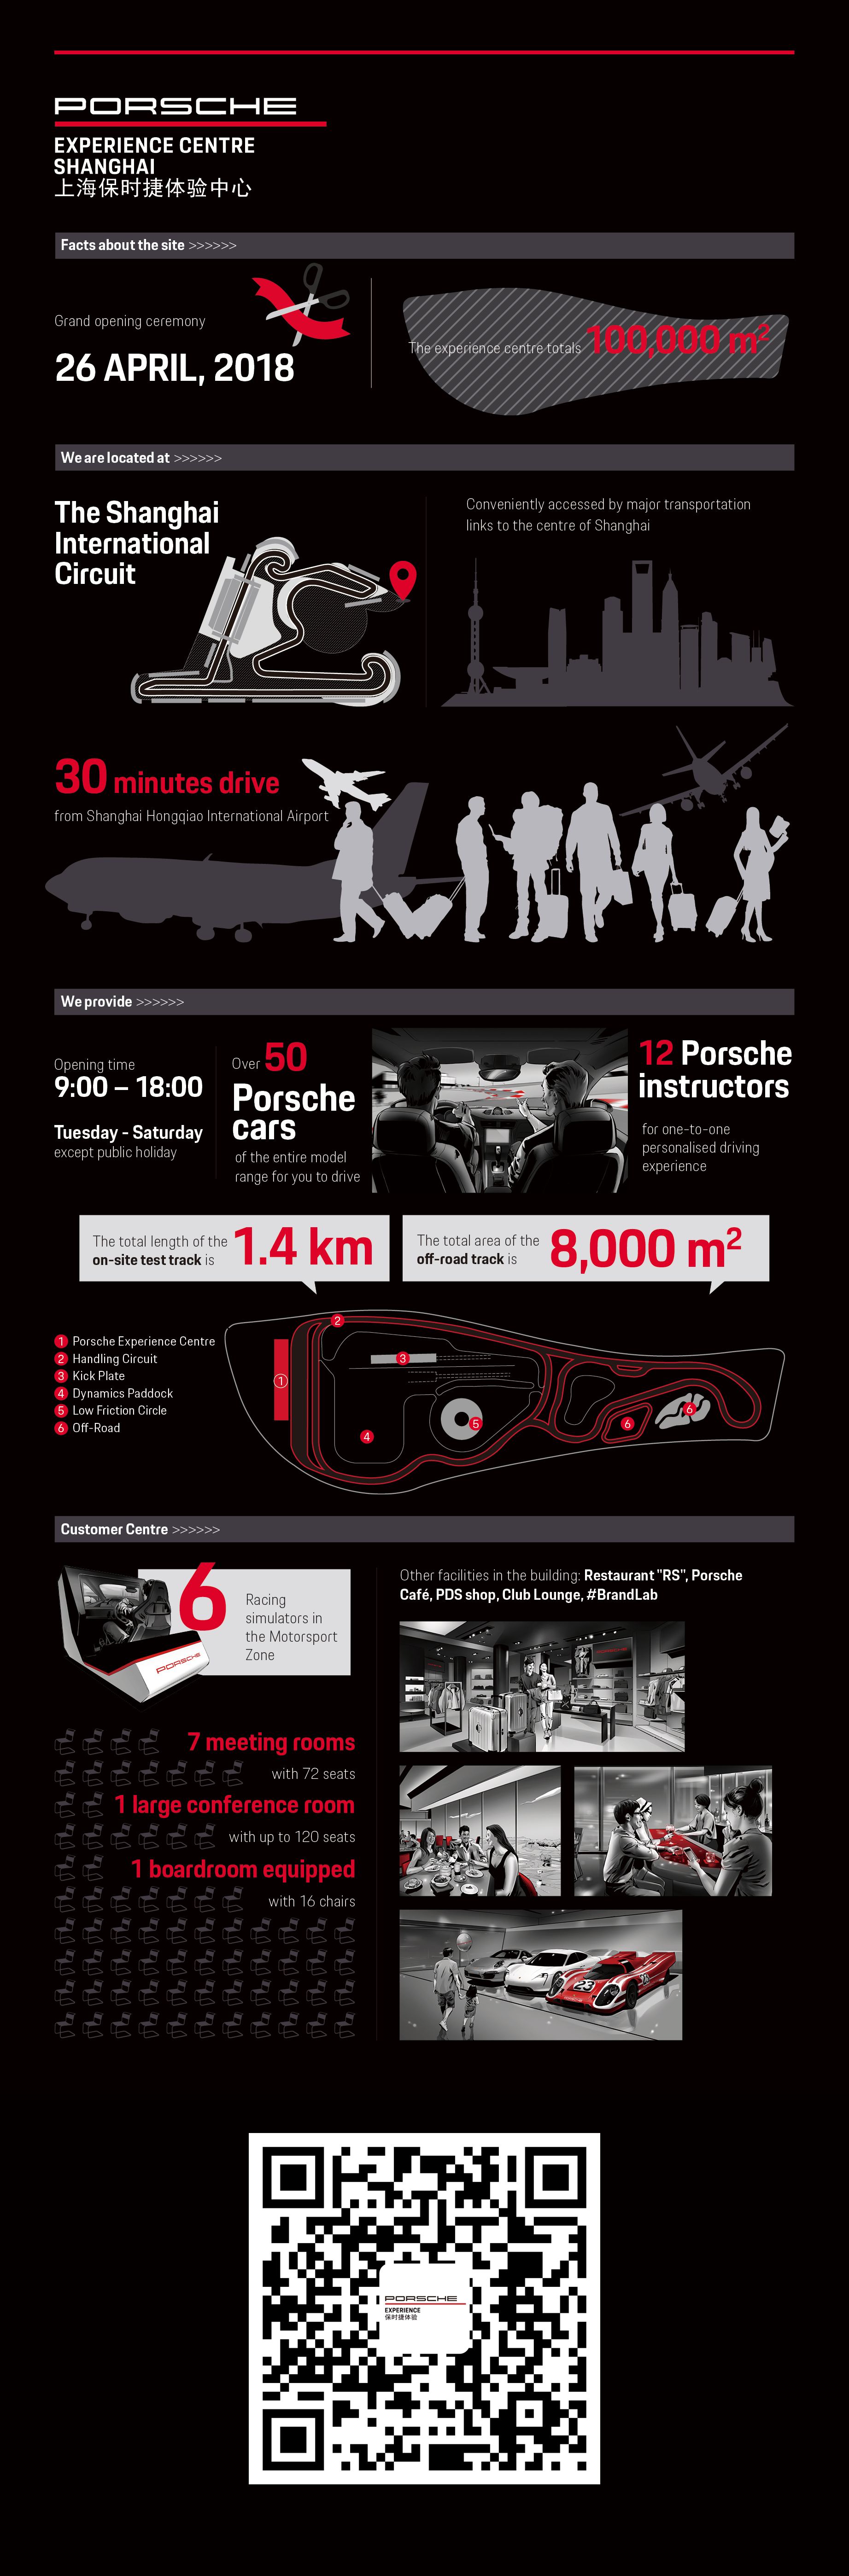 Key Facts and Figures of Porsche Experience Center Shanghai, 2018, Porsche AG